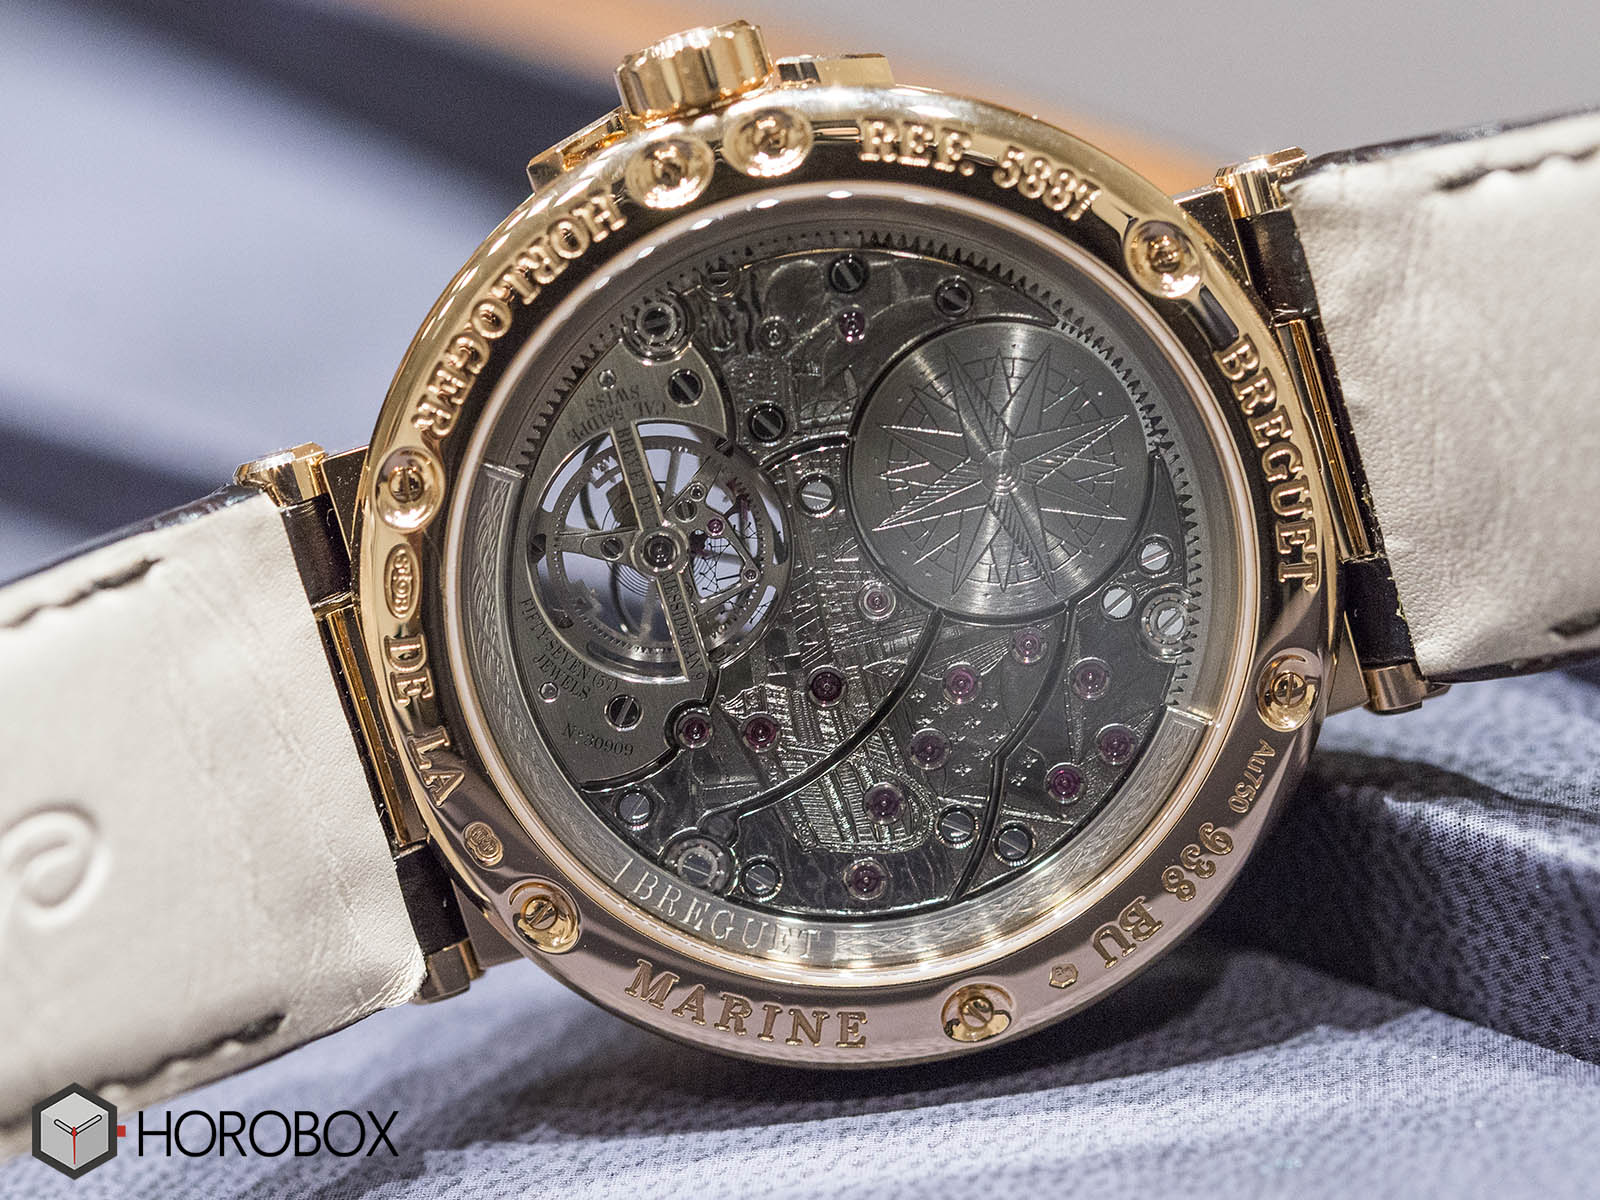 Breguet-Marine-Equation-Marchante-5887-18K-4.jpg